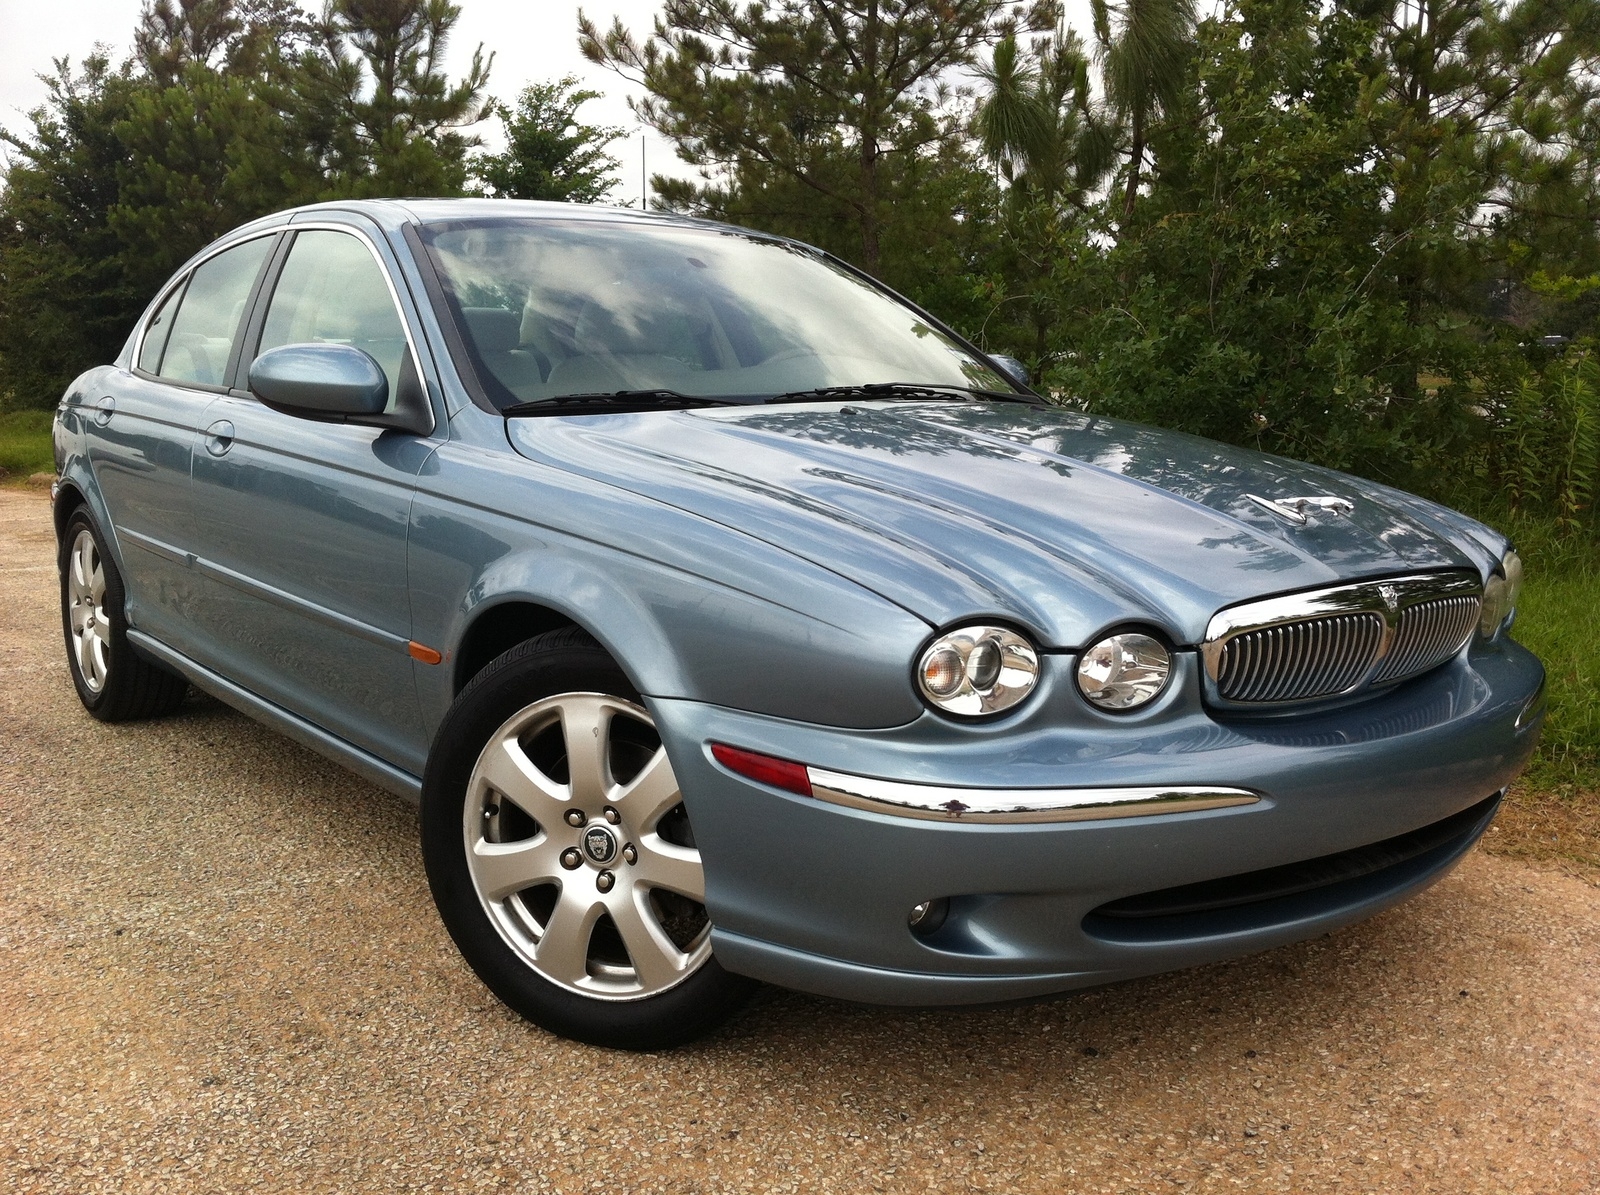 2005 jaguar x type information and photos zombiedrive. Black Bedroom Furniture Sets. Home Design Ideas